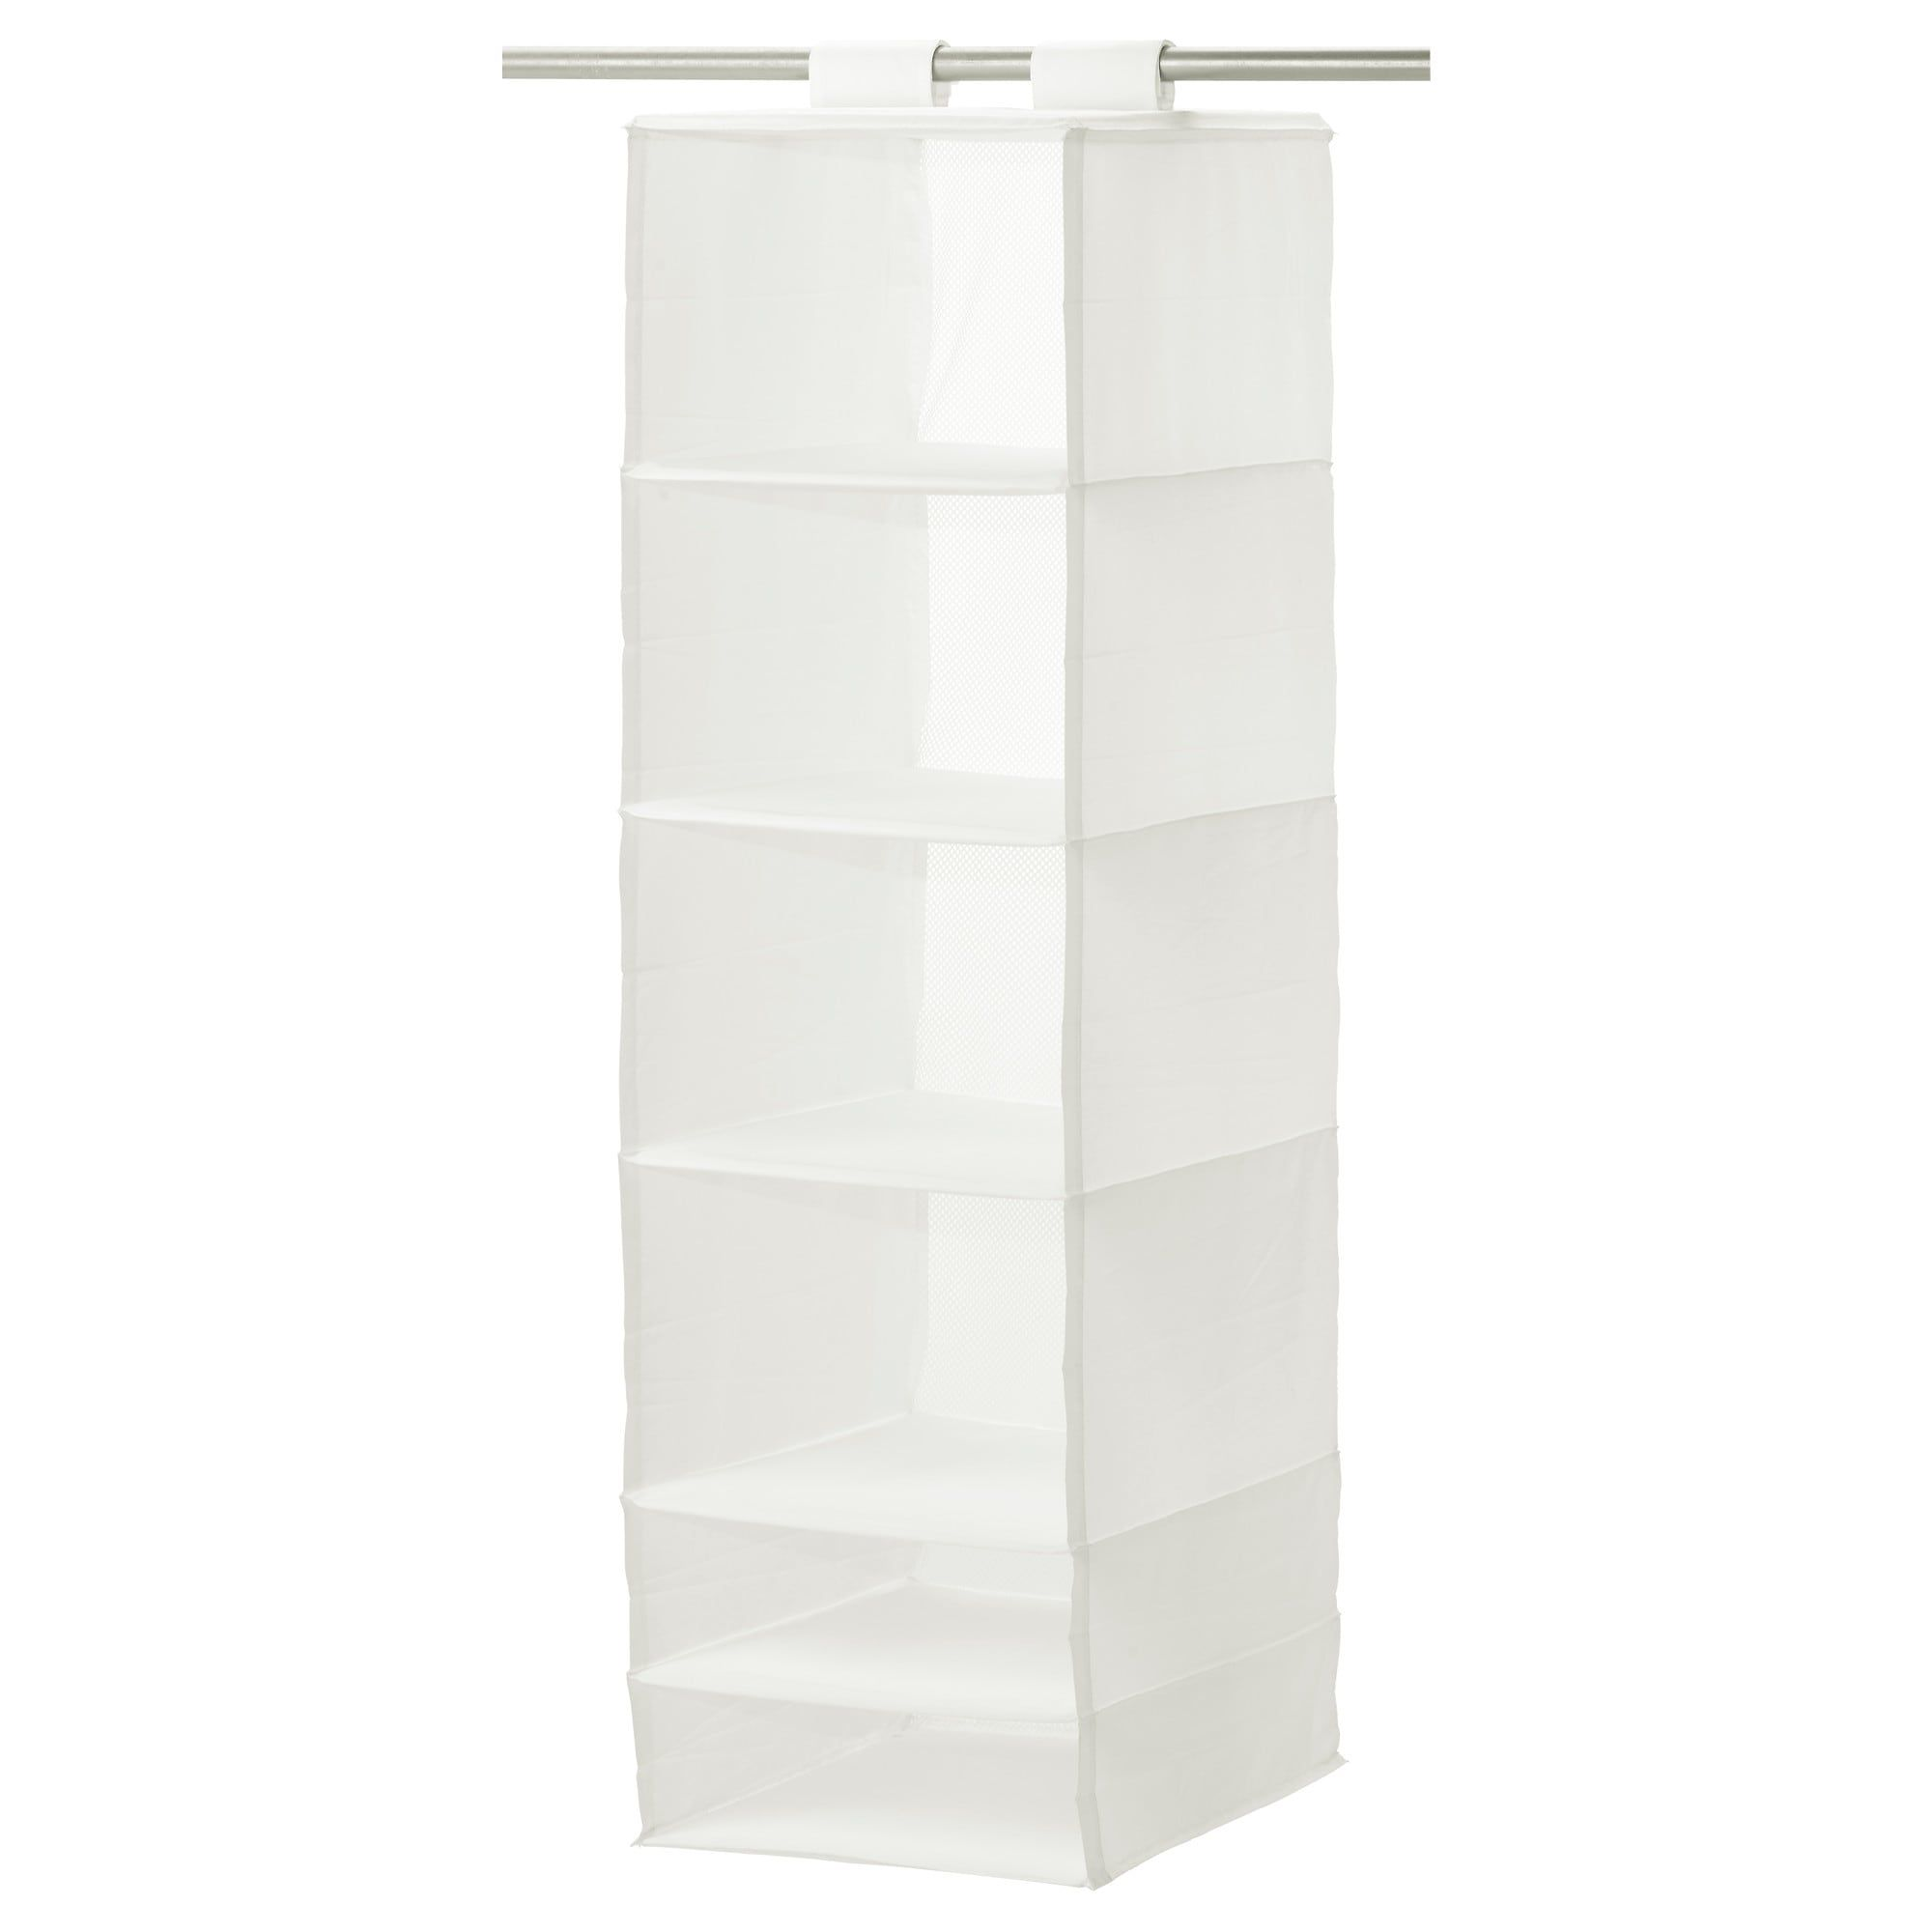 Skubb Hanging Organizer—IKEA bedroom storage